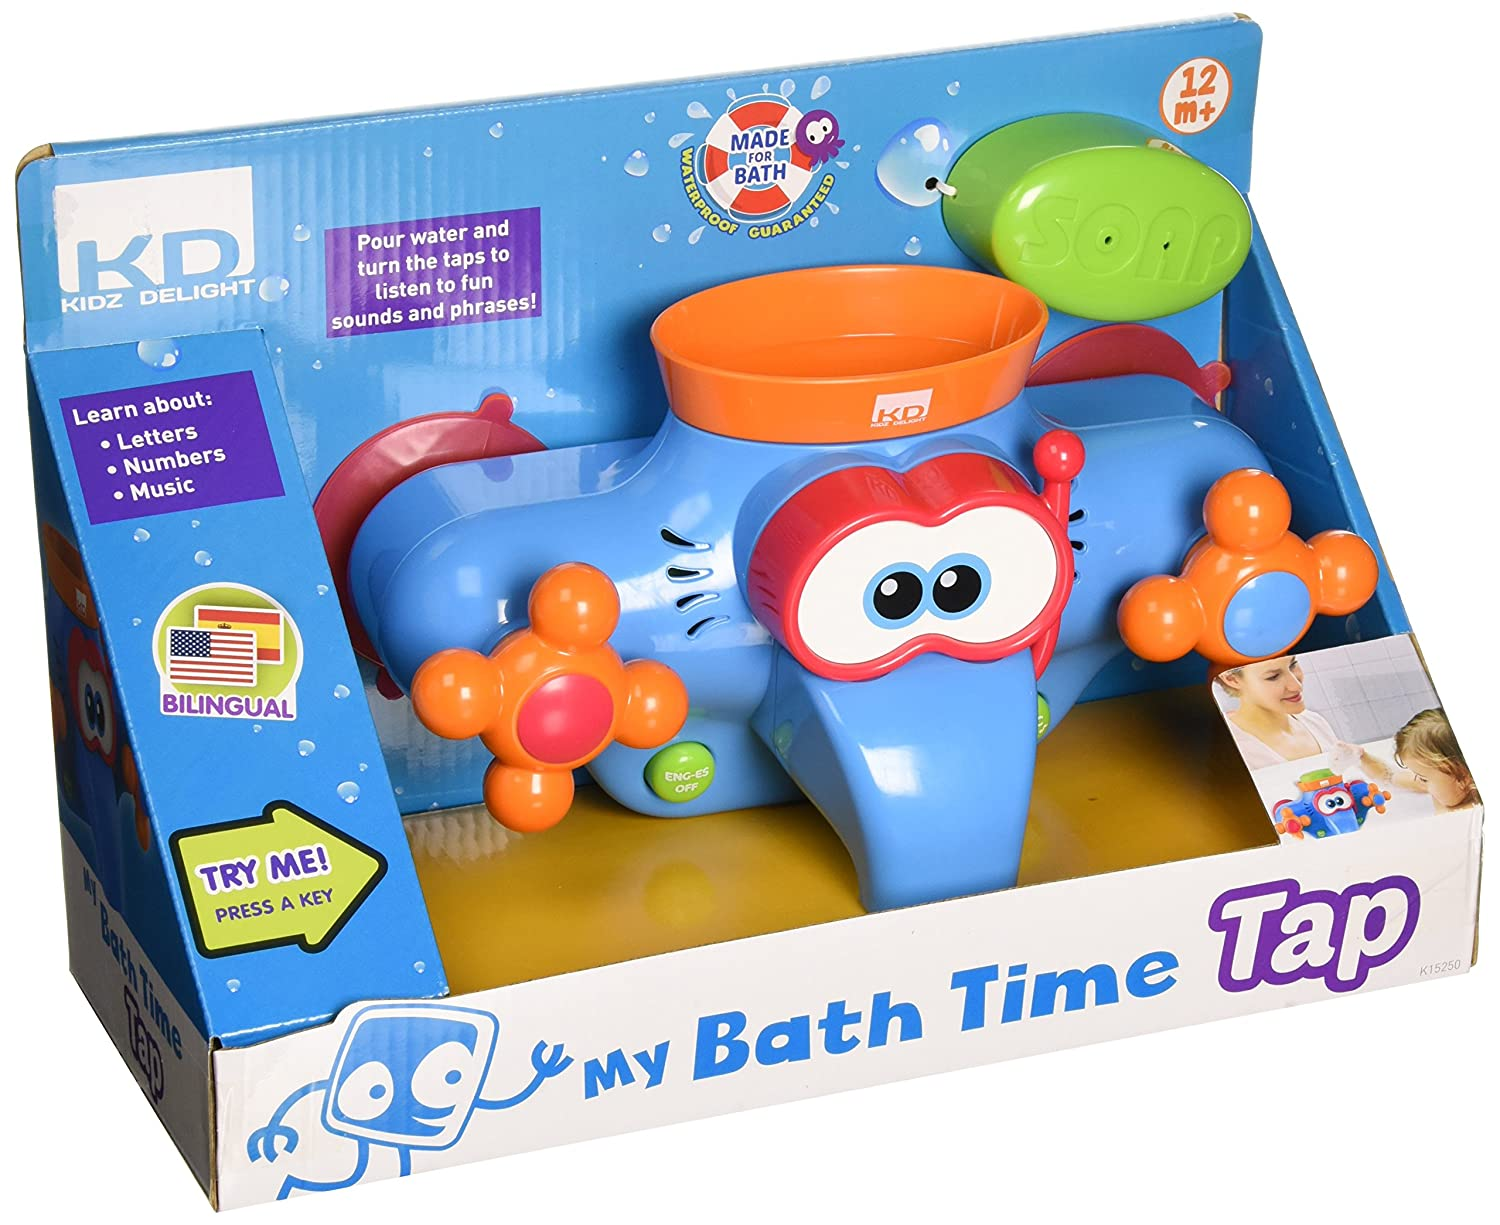 Amazon.com: Kidz Delight My Bath Time Tap Toy: Toys & Games